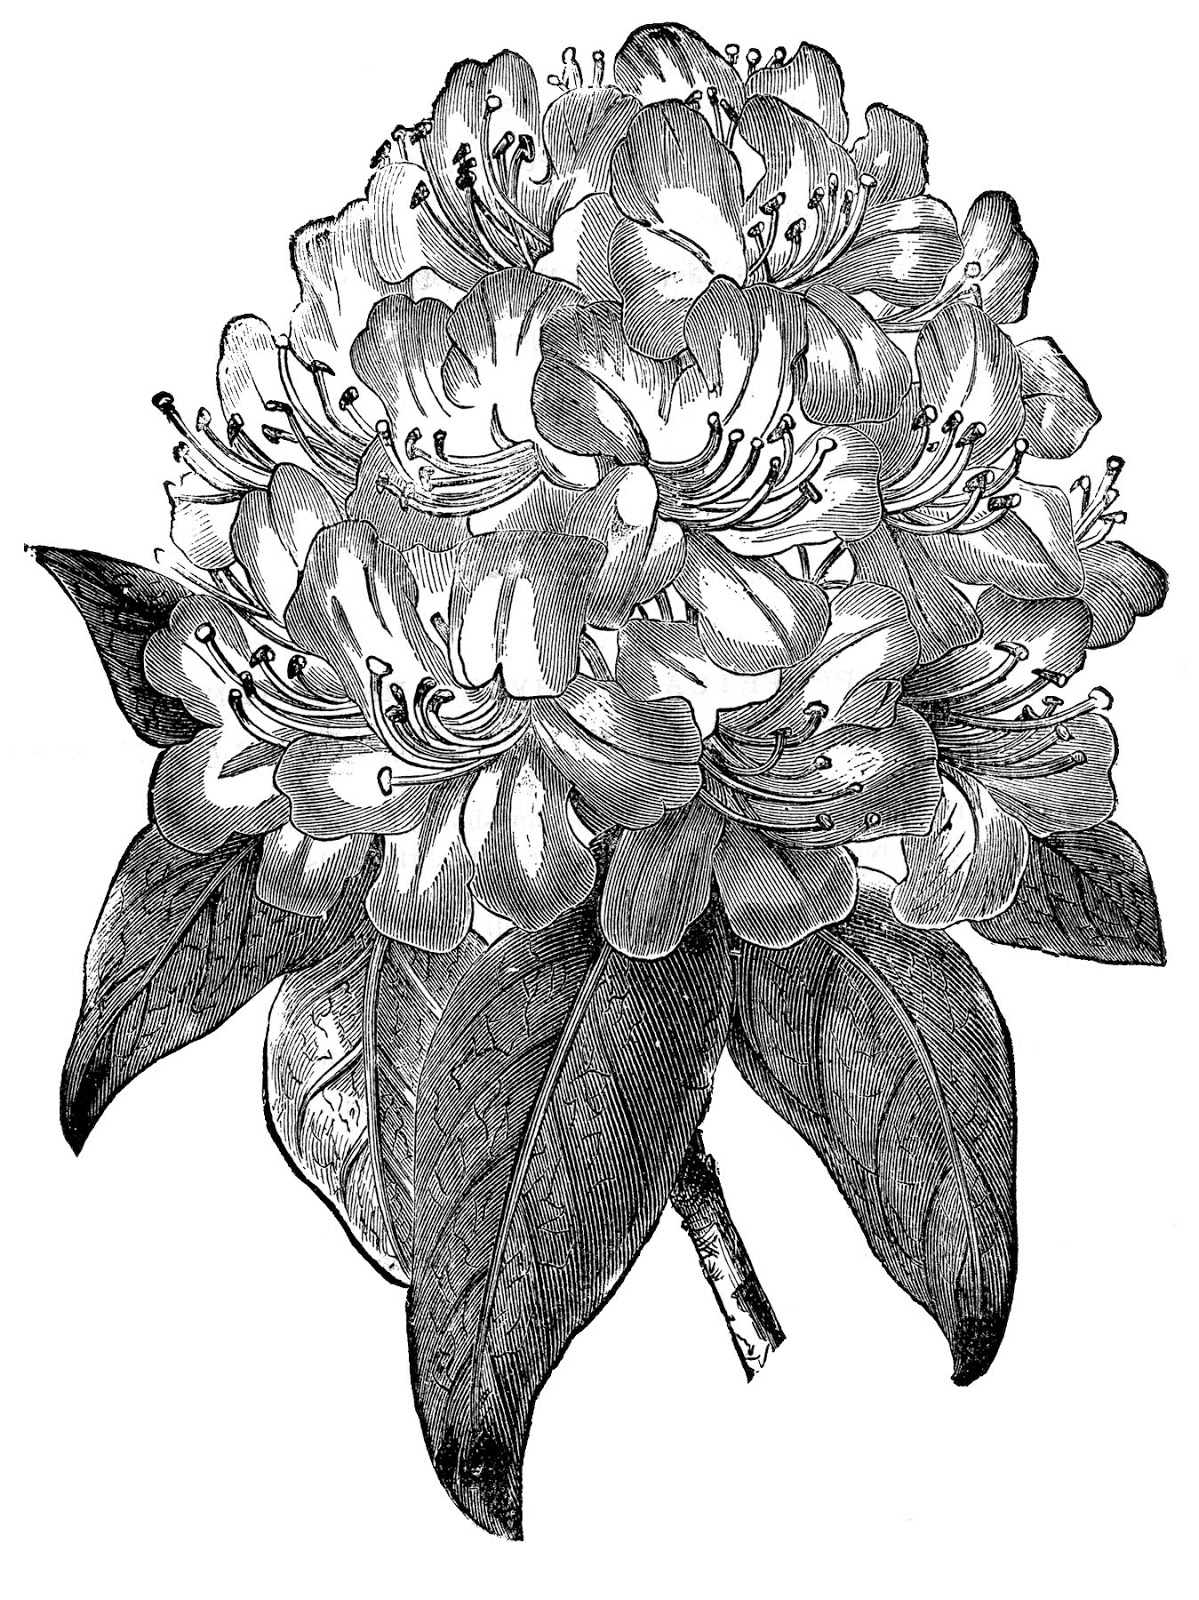 Vintage Botanical Image - Rhododendron - The Graphics Fairy